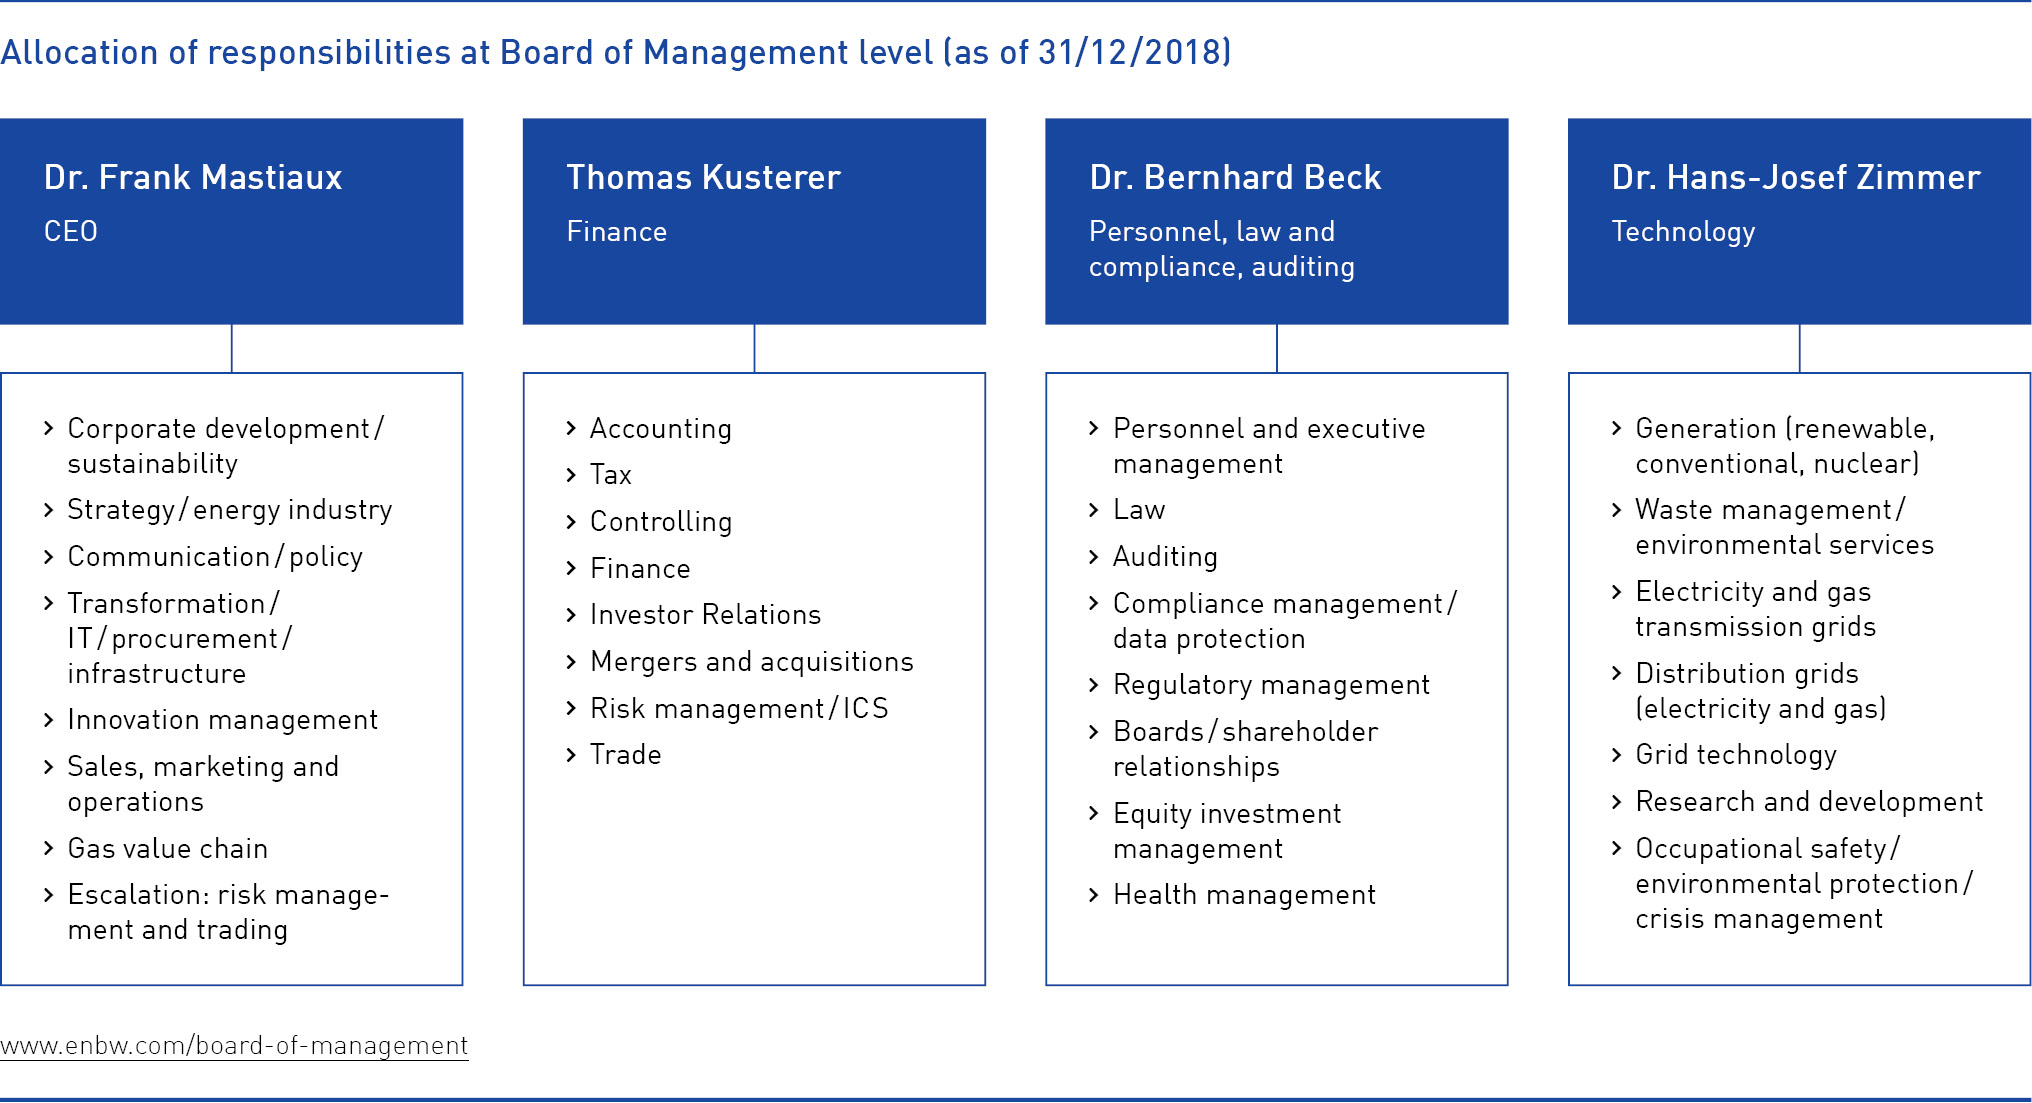 Allocation of responsibilities at Board of Management level